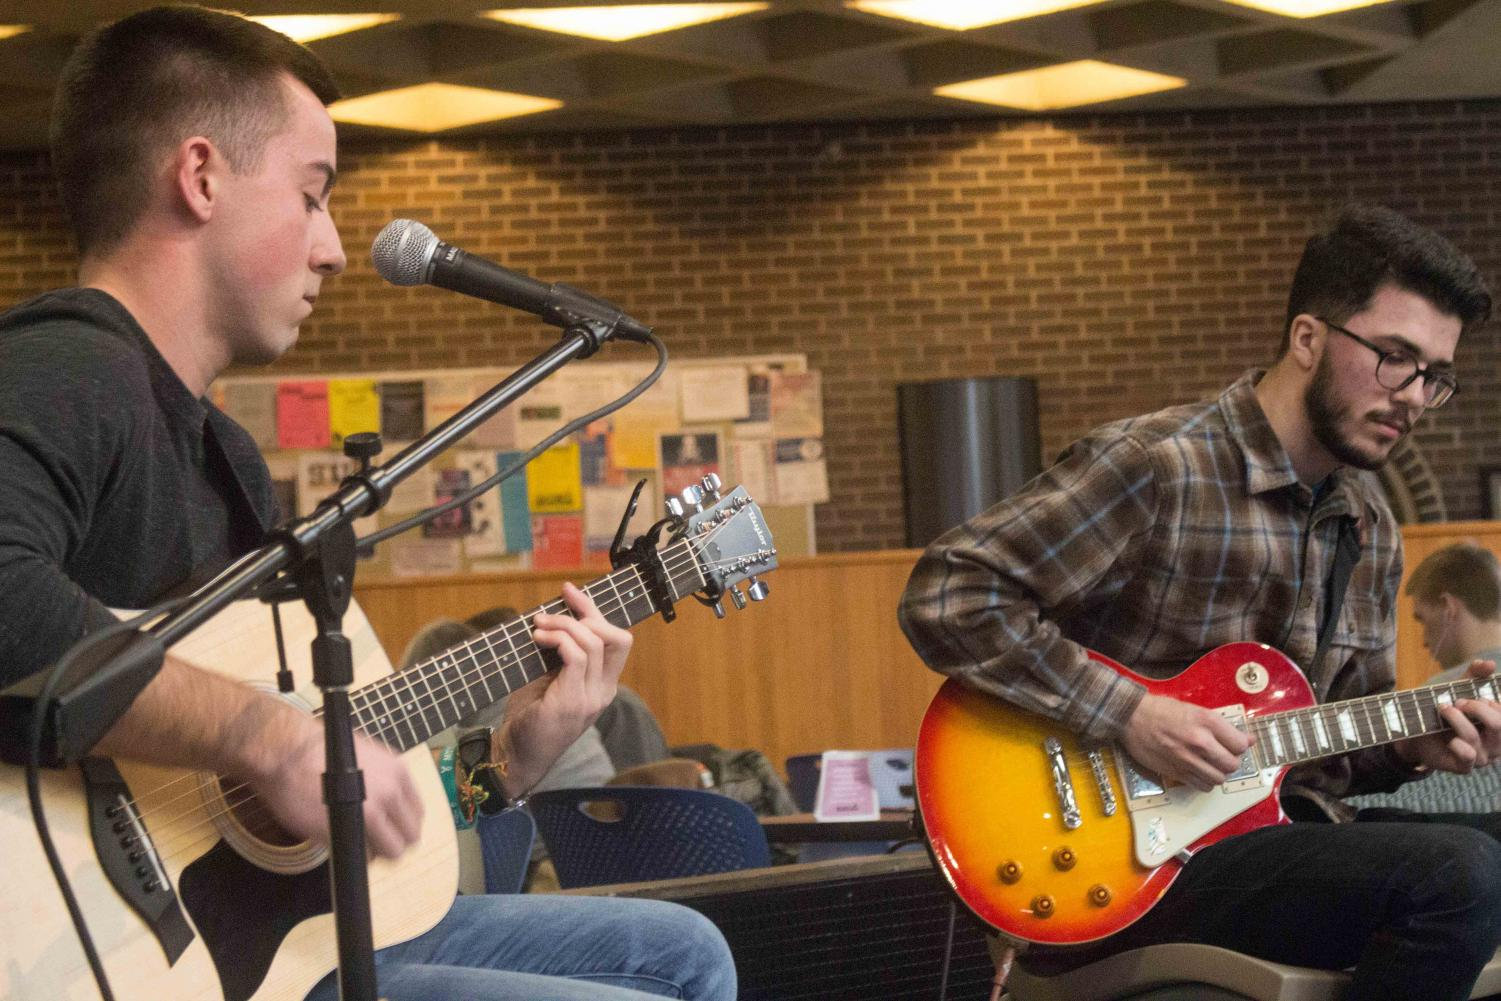 The Leather Jackets is a band started by UNI students Brandon Lynch (left) and Harry Schoening (right), who recently performed Maucker Union Live.